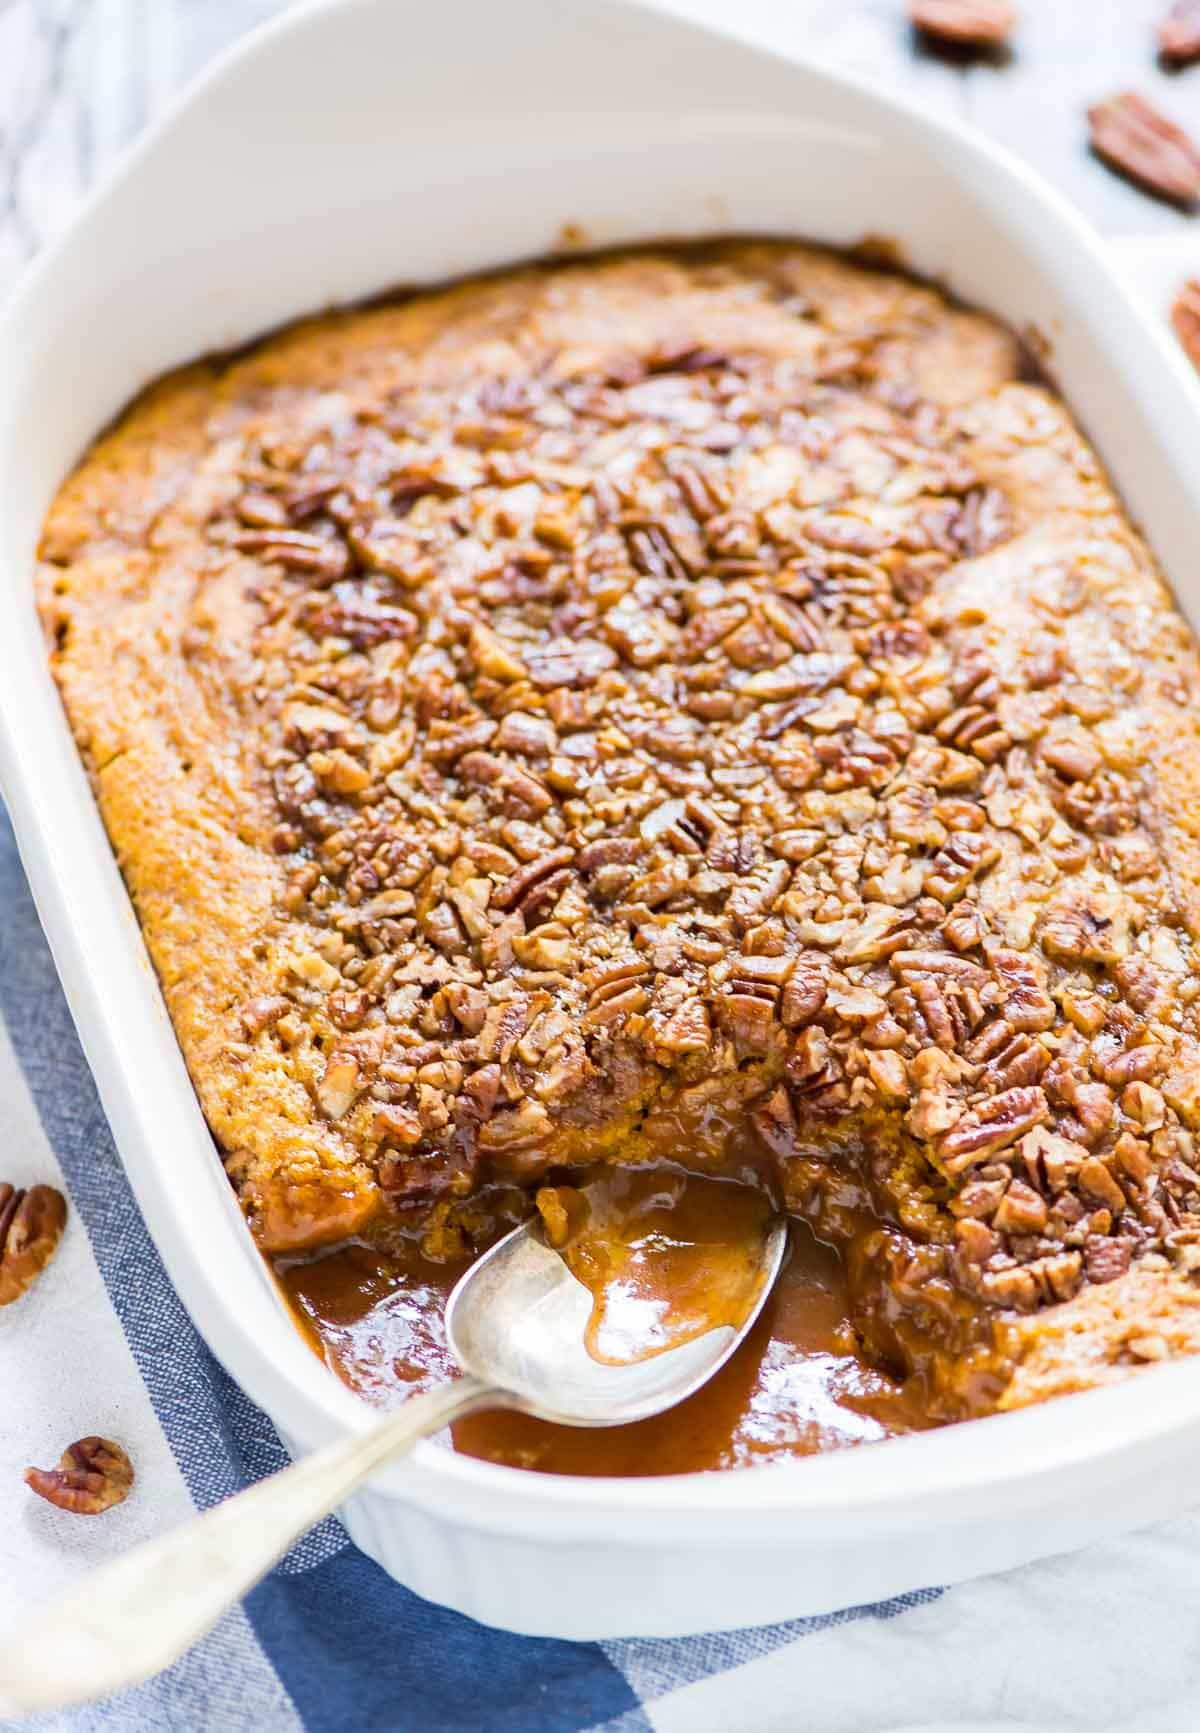 Pumpkin Pecan Cobbler. Fluffy, buttery pumpkin cake with a brown sugar cinnamon topping and caramel sauce. TO DIE FOR. @wellplated